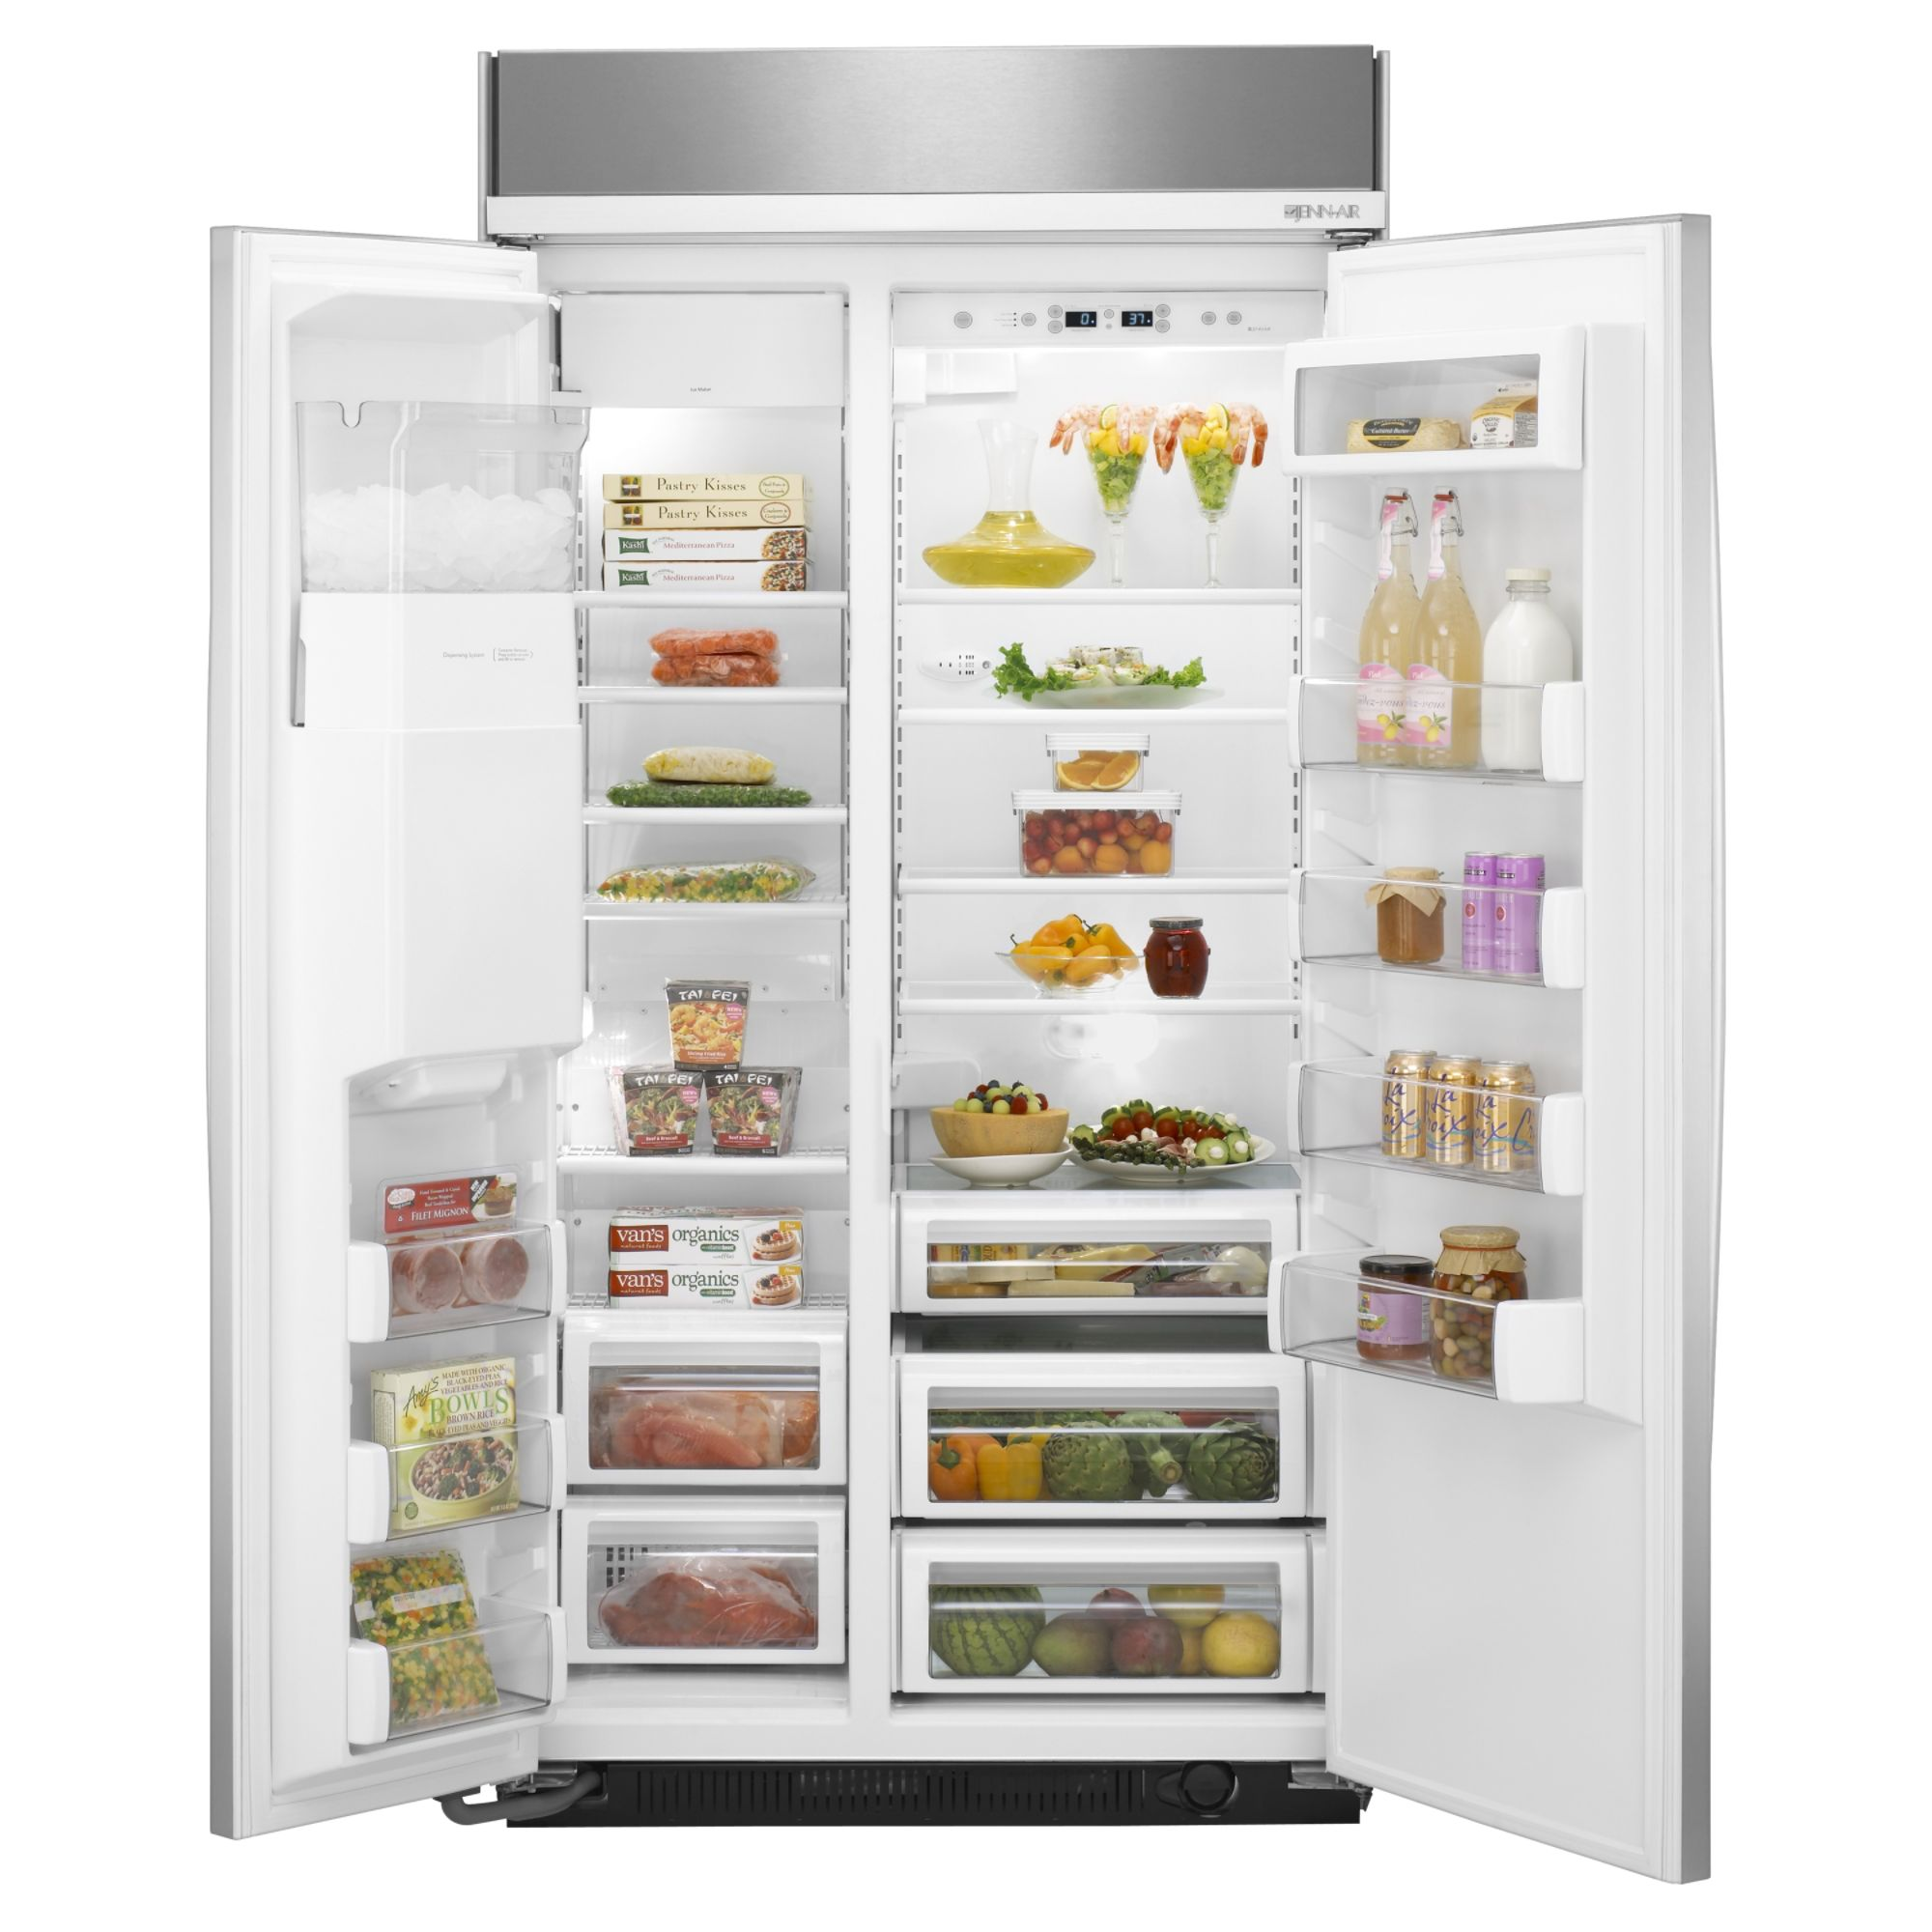 Jenn-Air 29.7 cu. ft. Built-In Side-By-Side Refrigerator w/ Dispenser